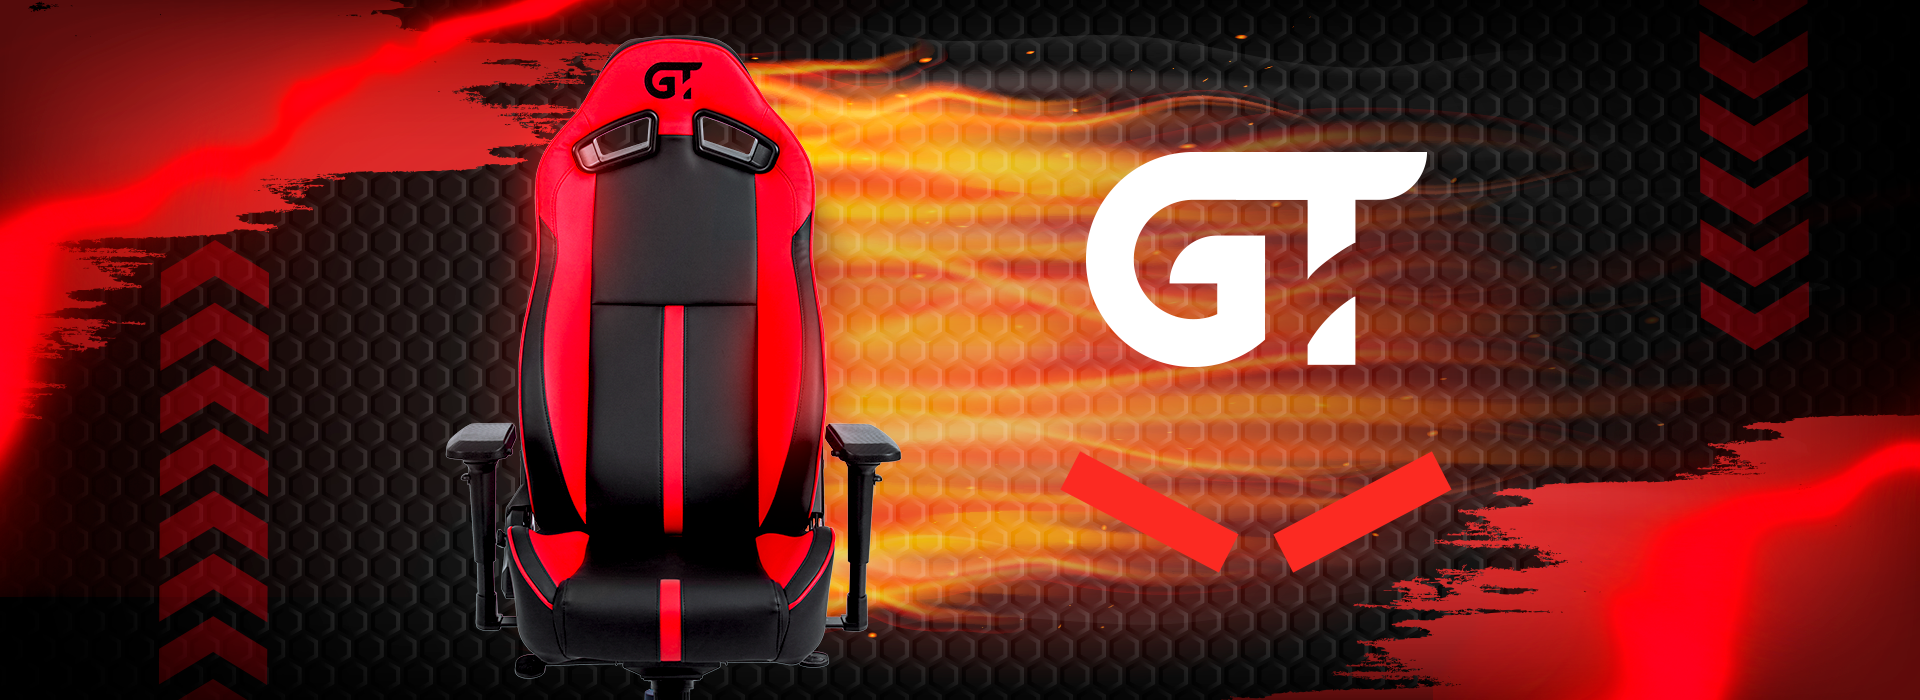 GT has become a partner of the HellRaisers team.